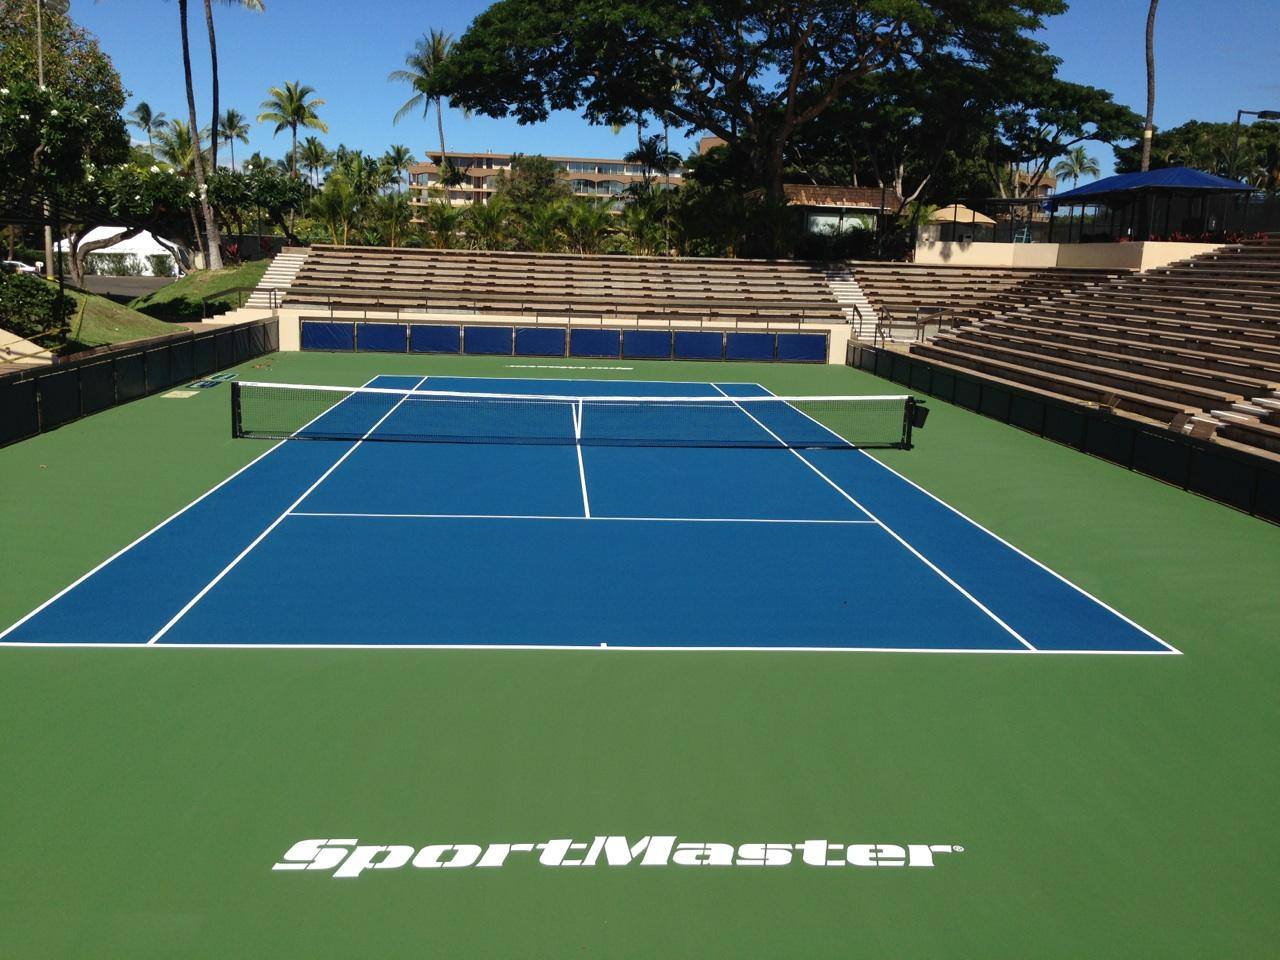 Tennis court resurfacing repair hawaii How much does a sport court cost